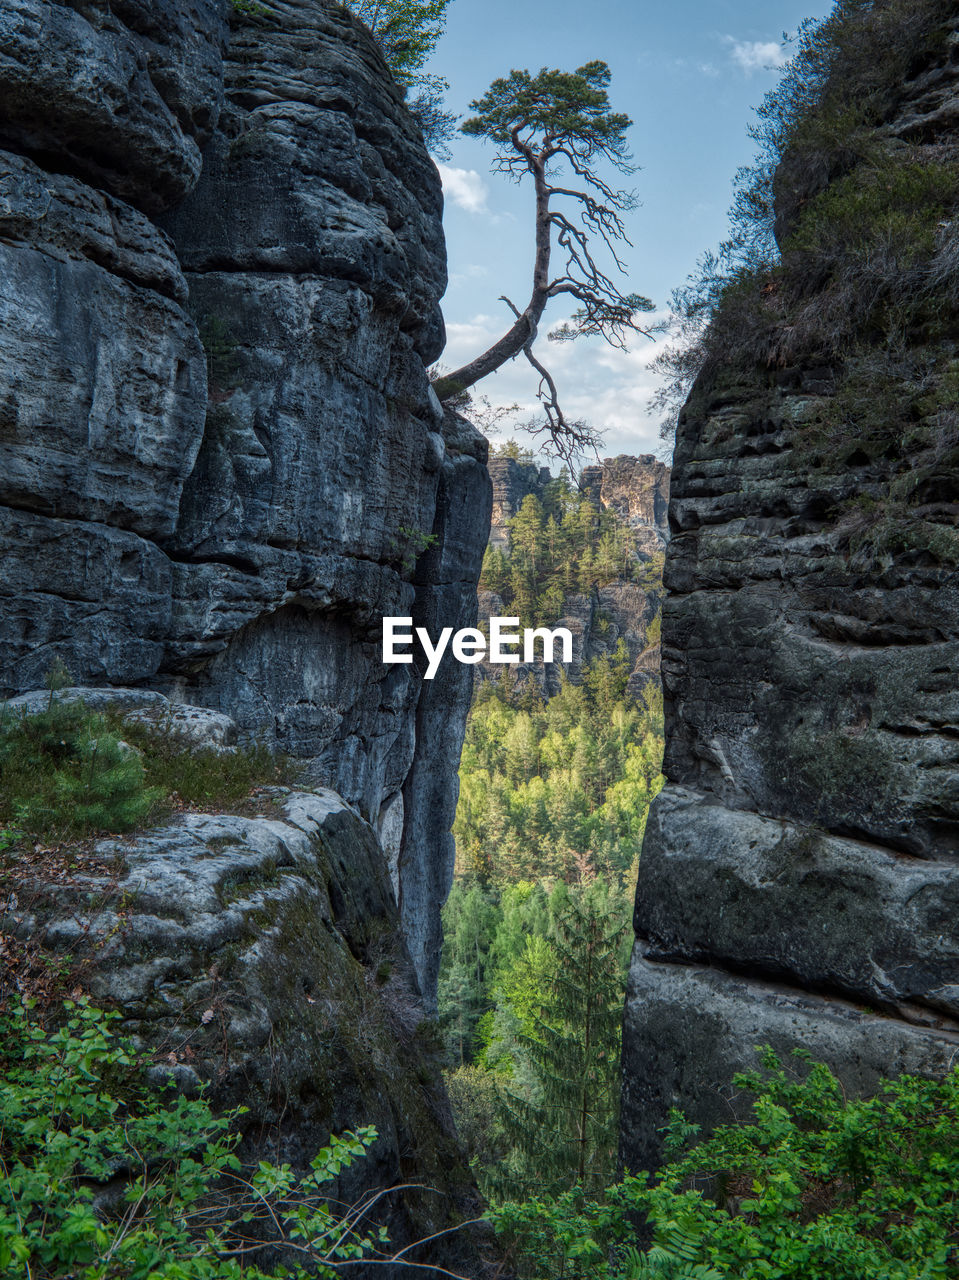 plant, tree, nature, beauty in nature, rock, no people, day, tranquility, land, solid, rock - object, rock formation, tranquil scene, tree trunk, trunk, growth, scenics - nature, non-urban scene, forest, low angle view, outdoors, formation